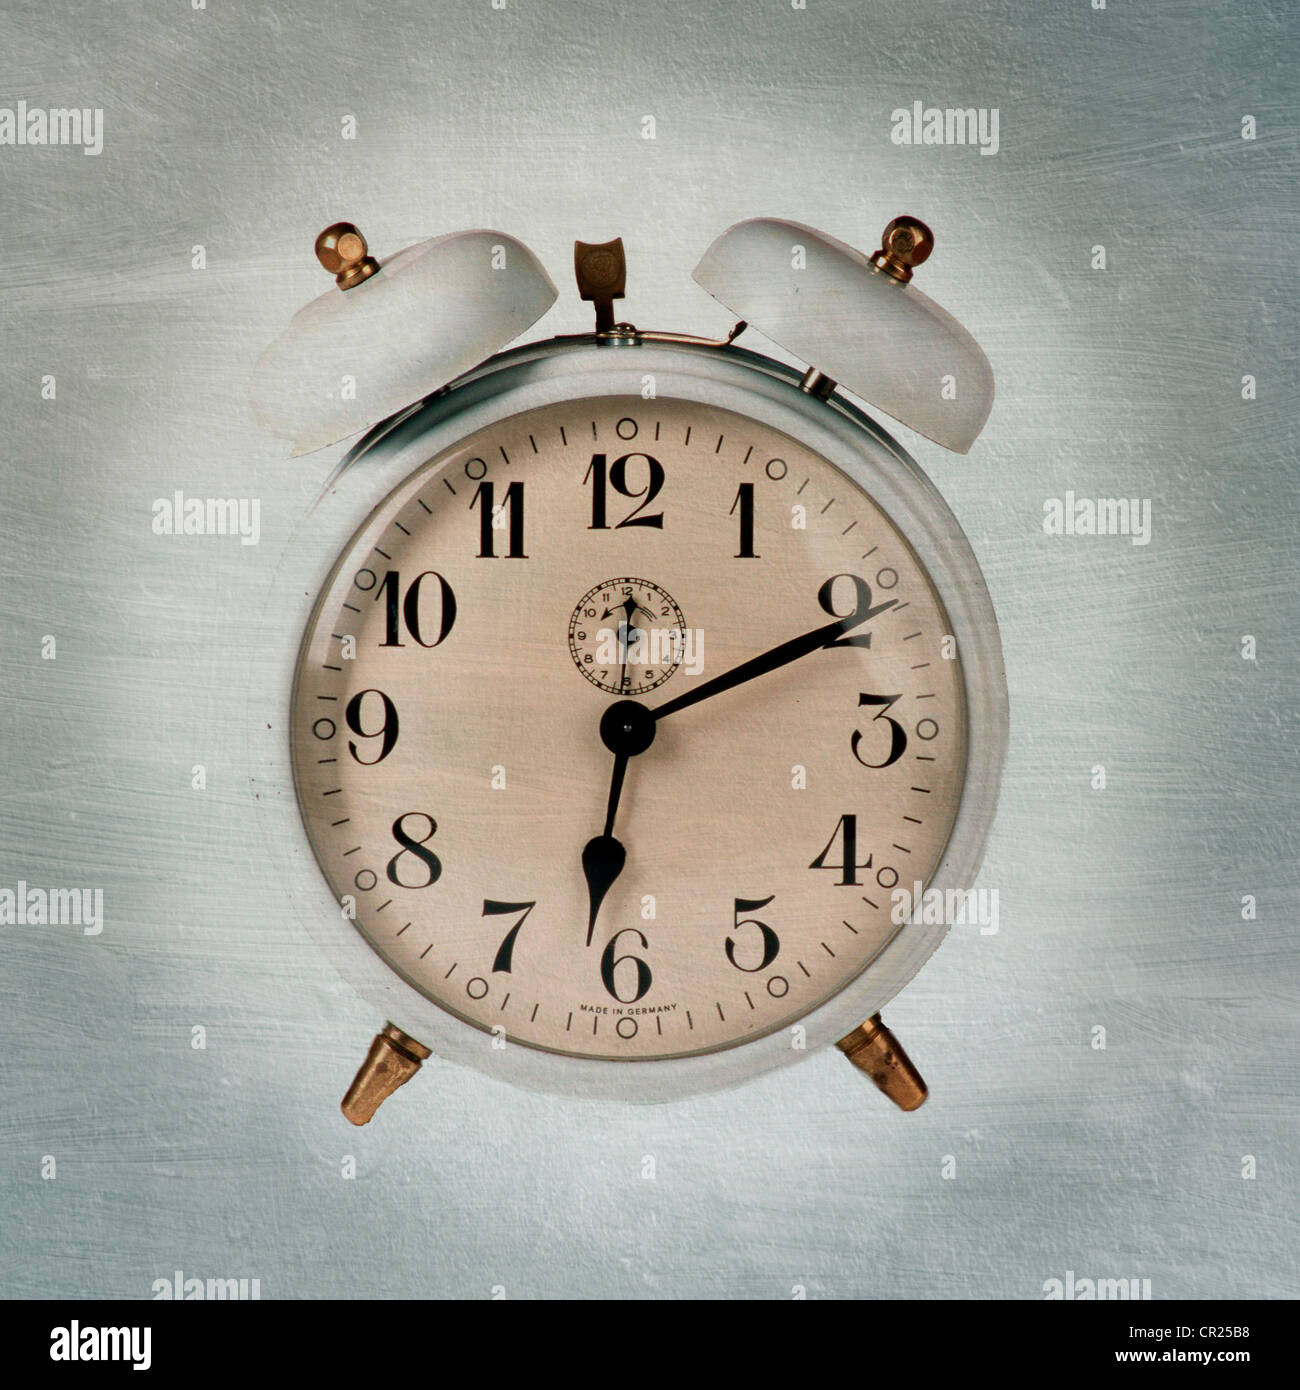 Old fashioned alarm clock. - Stock Image